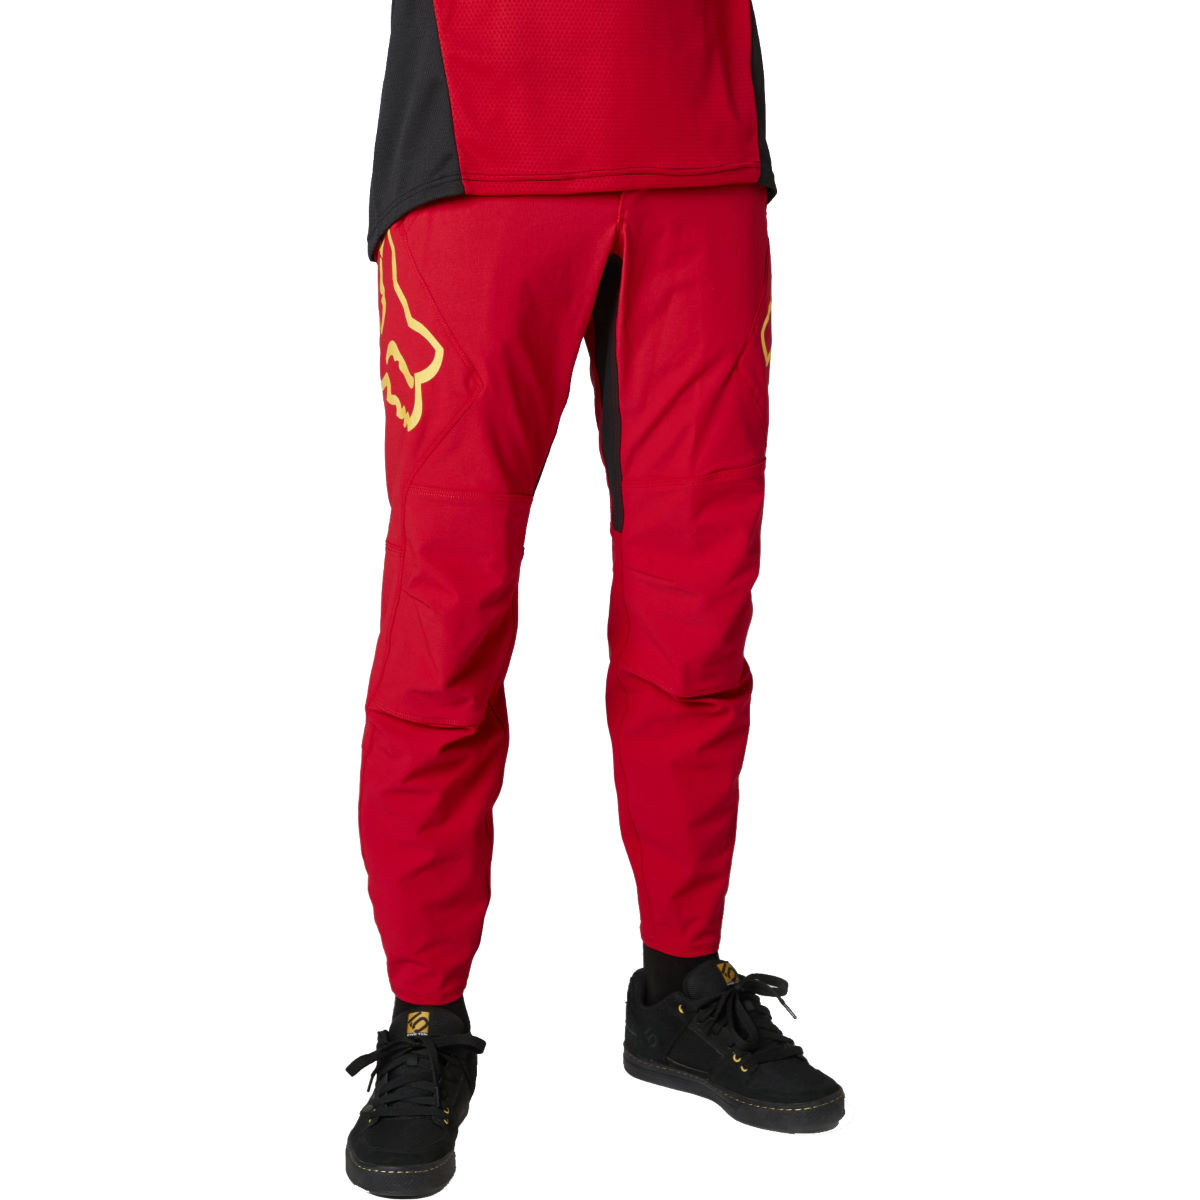 Fox Racing Defend Cycling Trousers Rs - 32 Chili  Trousers